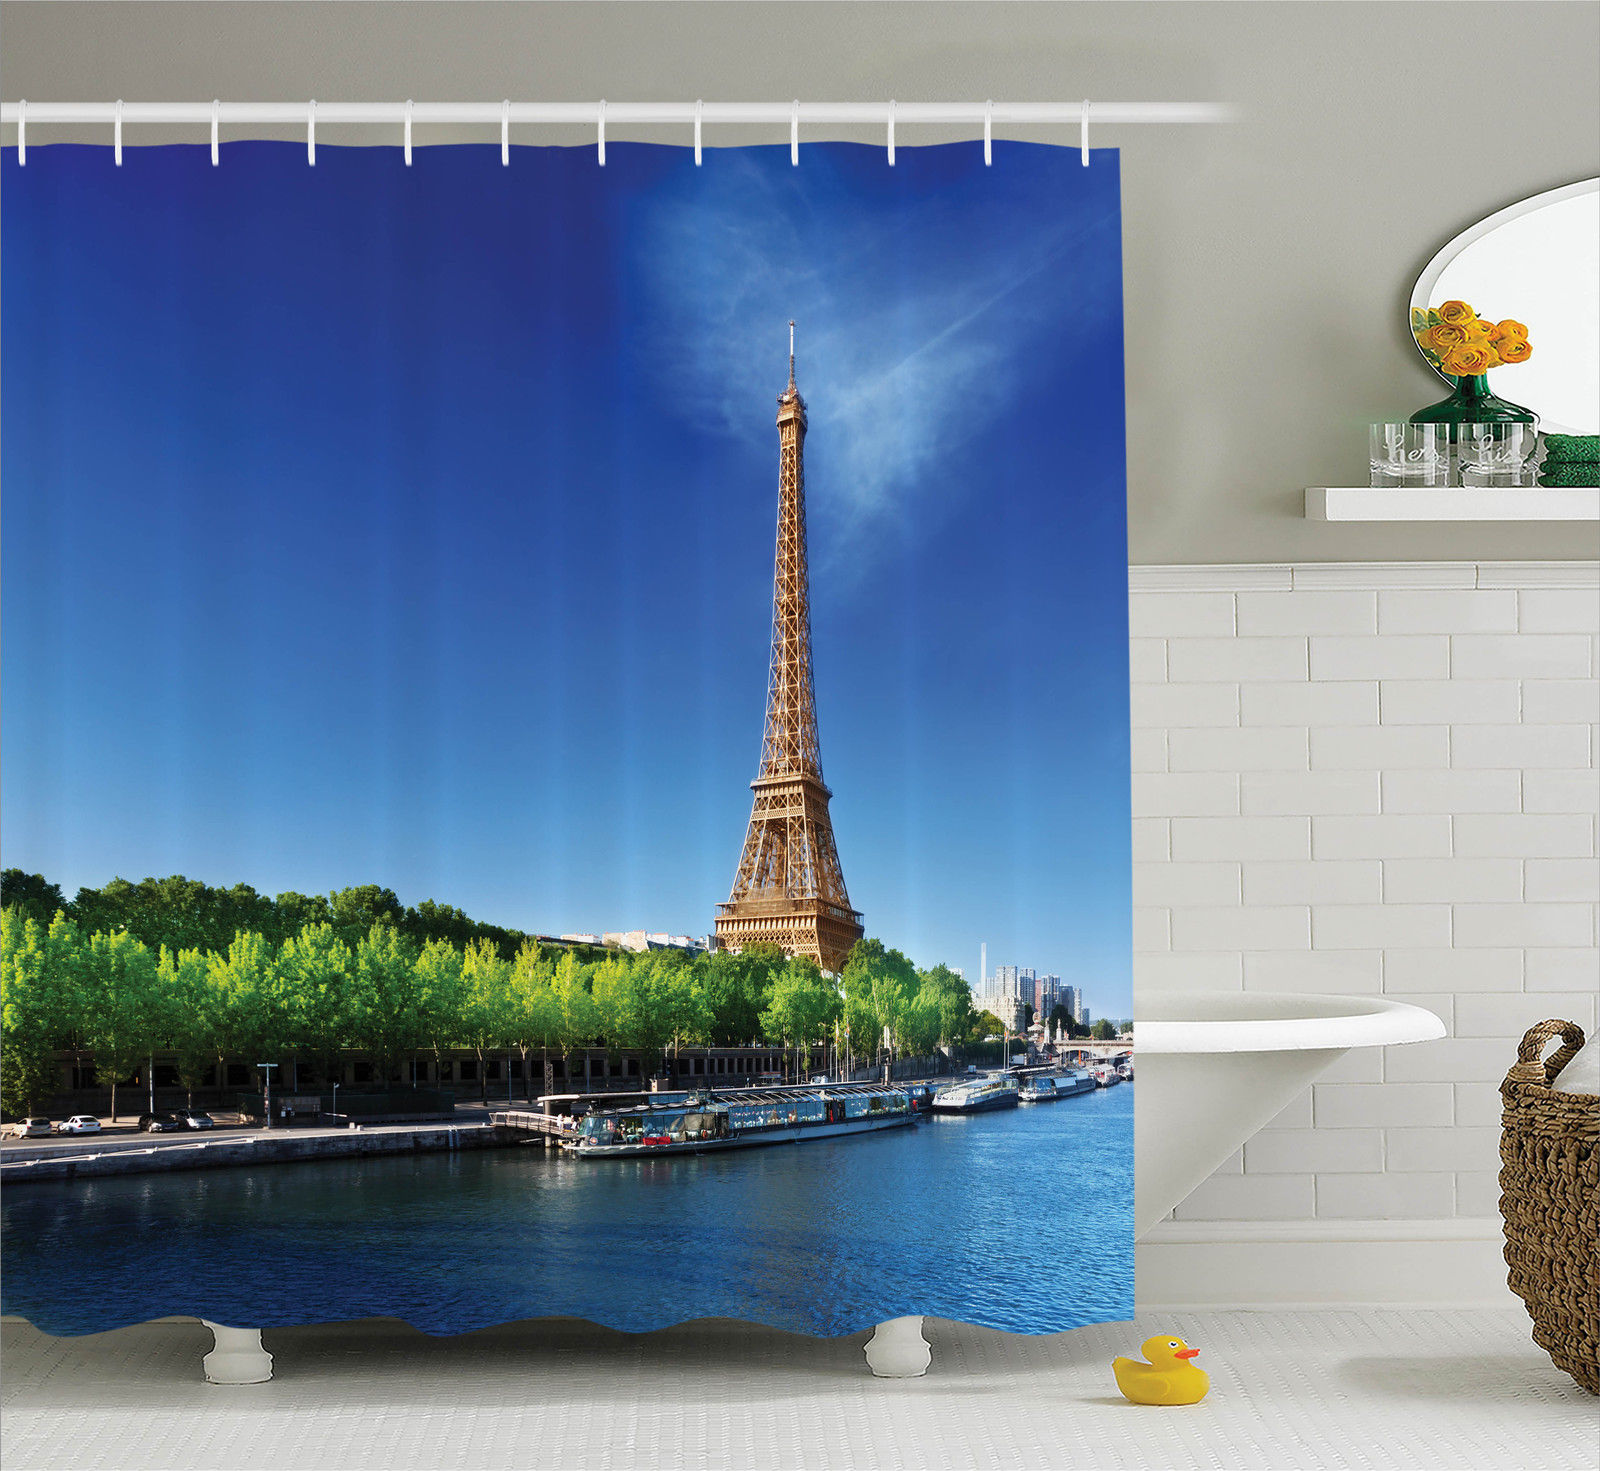 Eiffel Tower Decor Seine In Paris With Eiffel Tower Sunrise Time Trees River Grass Nature Panorama, Bathroom Accessories, 69W X 84L Inches Extra Long, By Ambesonne